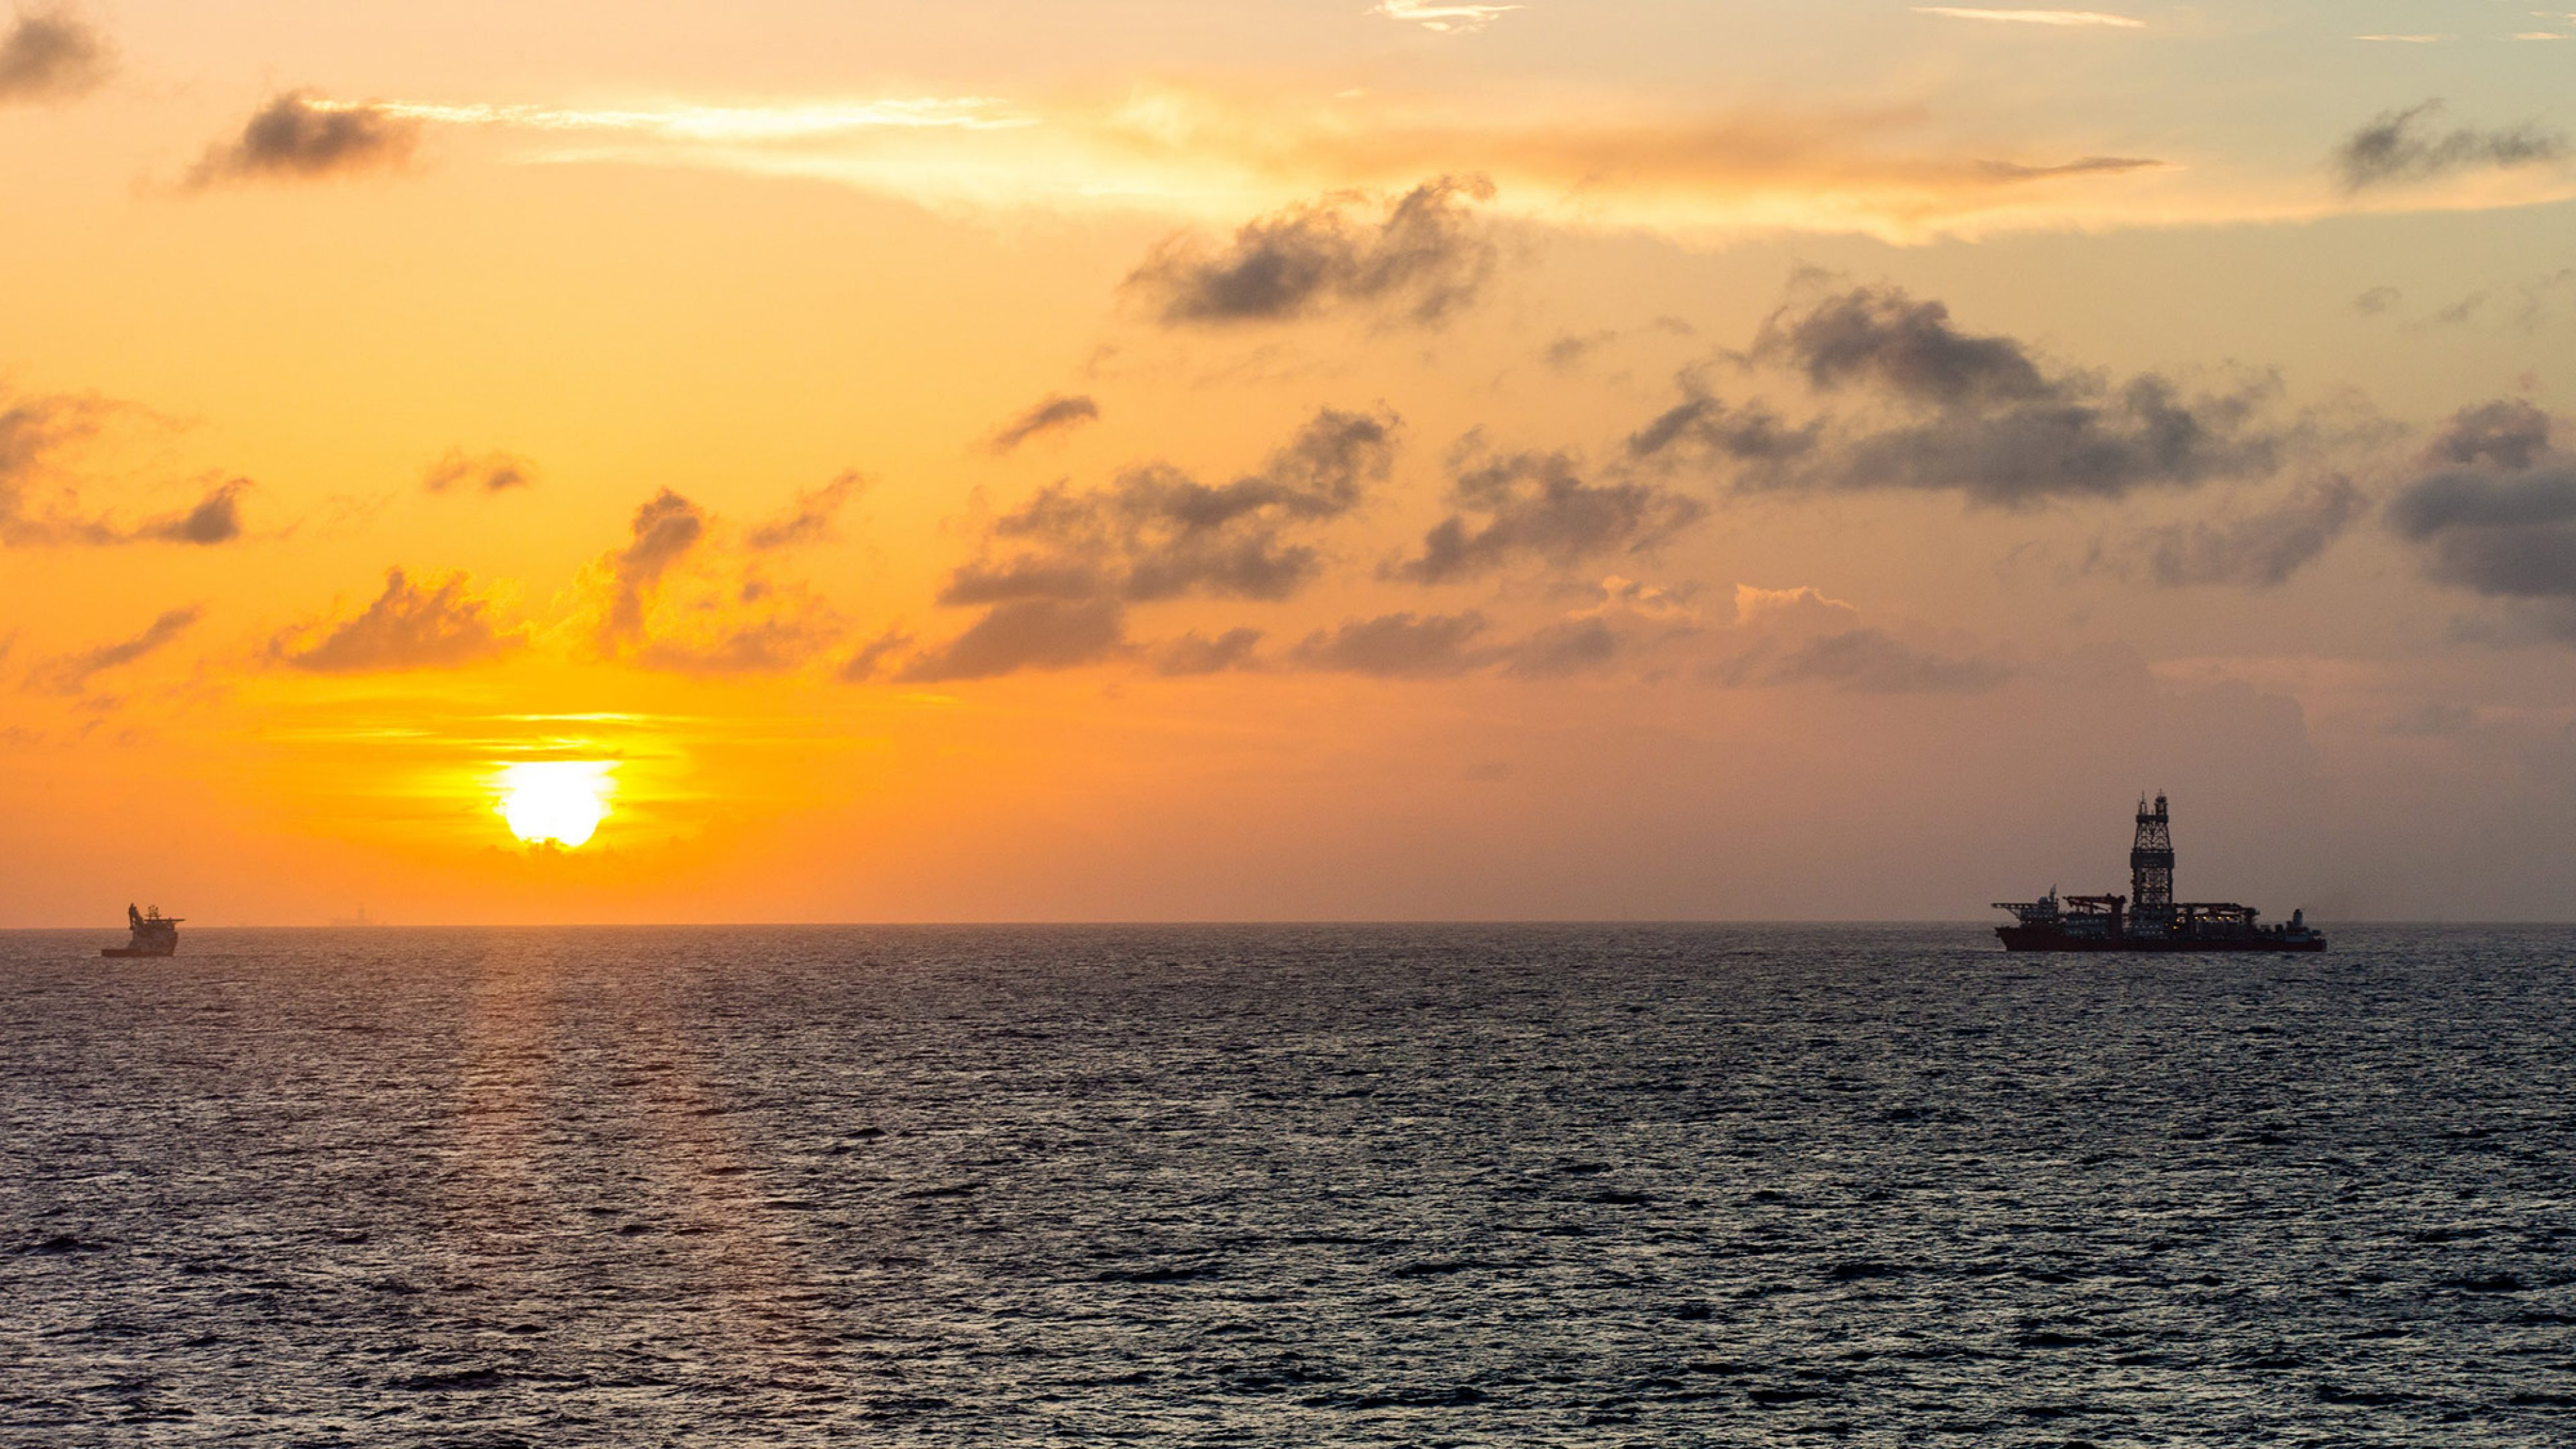 A drill ship and supply vessel in the Gulf of Mexico at sunset